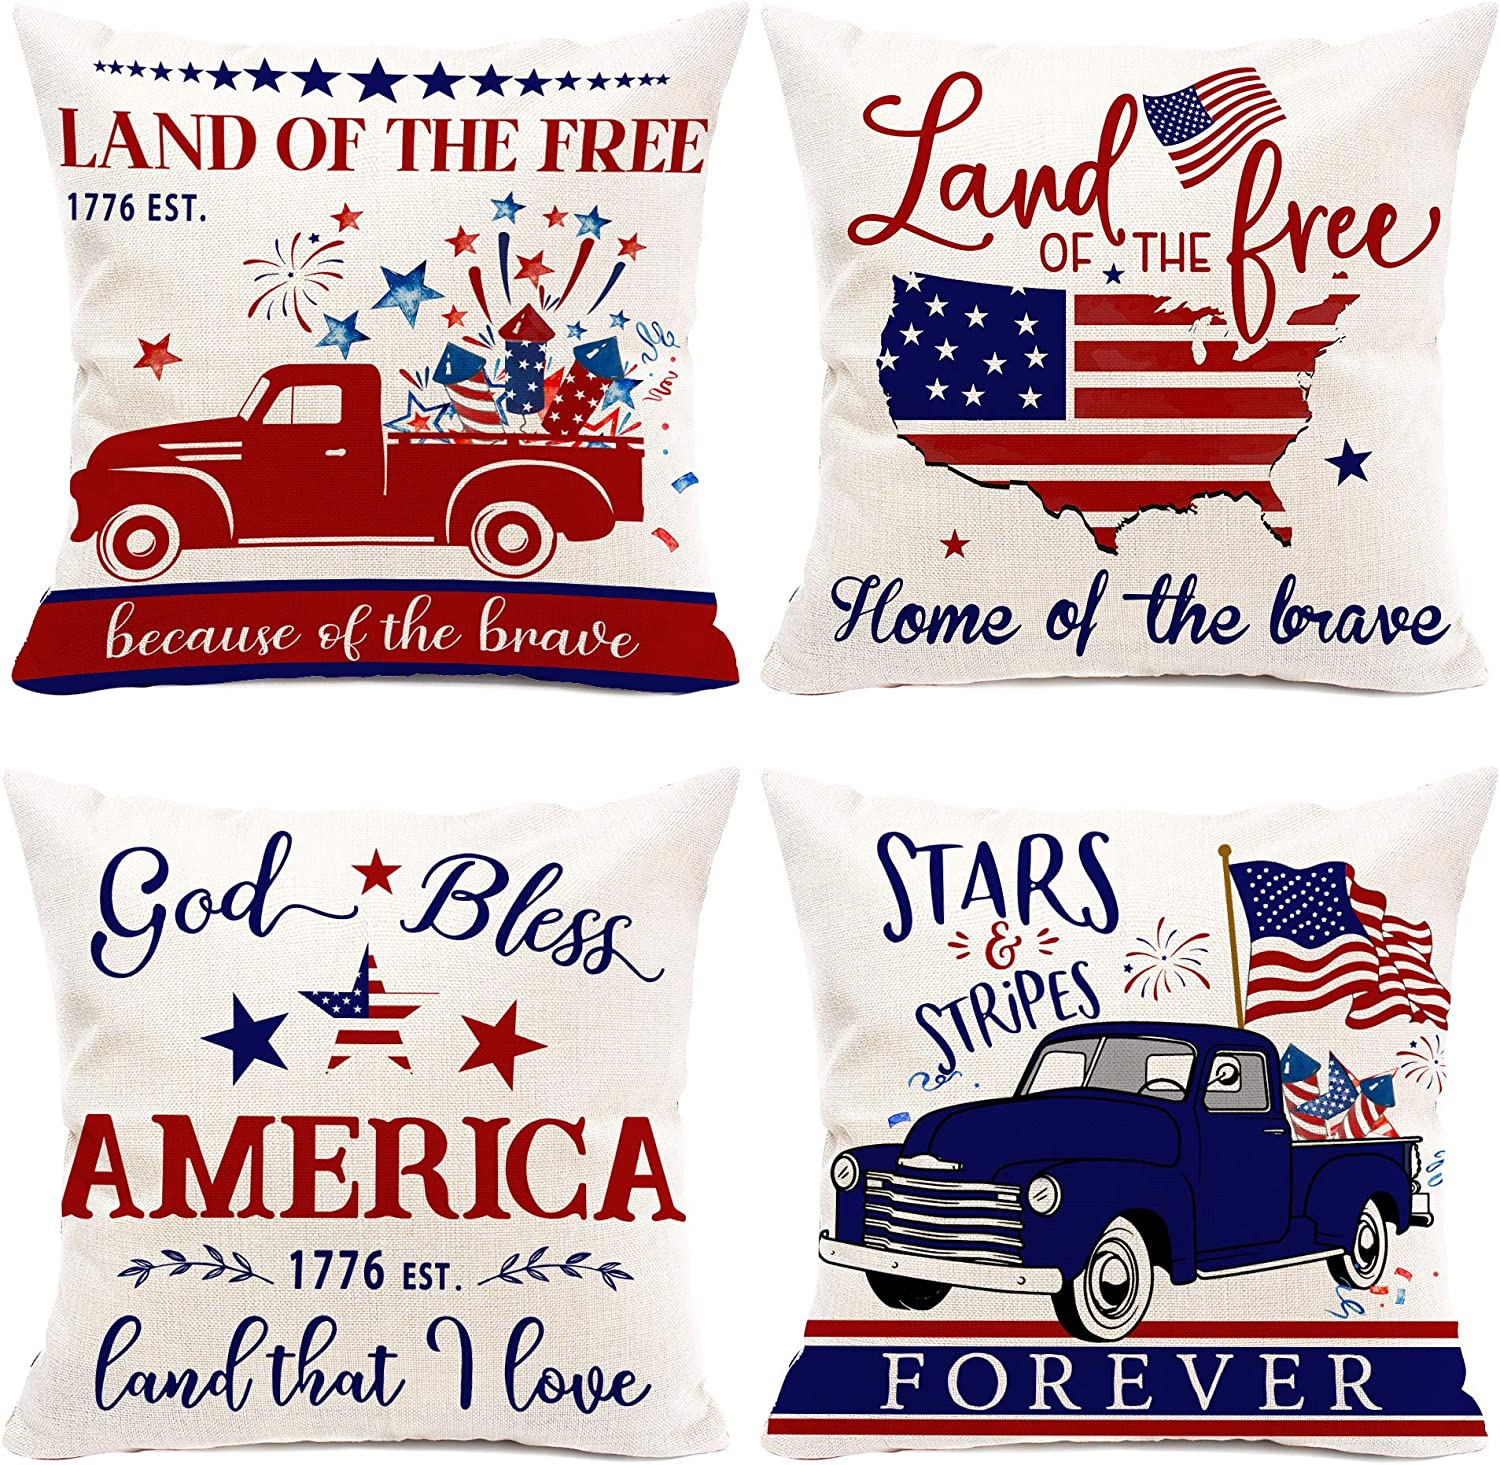 Hexagram July 4th Pillow Covers 18x18 Set of 4, American Flag Patriotic Pillows Decorative Independence Day Truck Throw Cushion Pillow Cases for Couch, Sofa, Bedroom Outdoor/Indoor Home Decorations